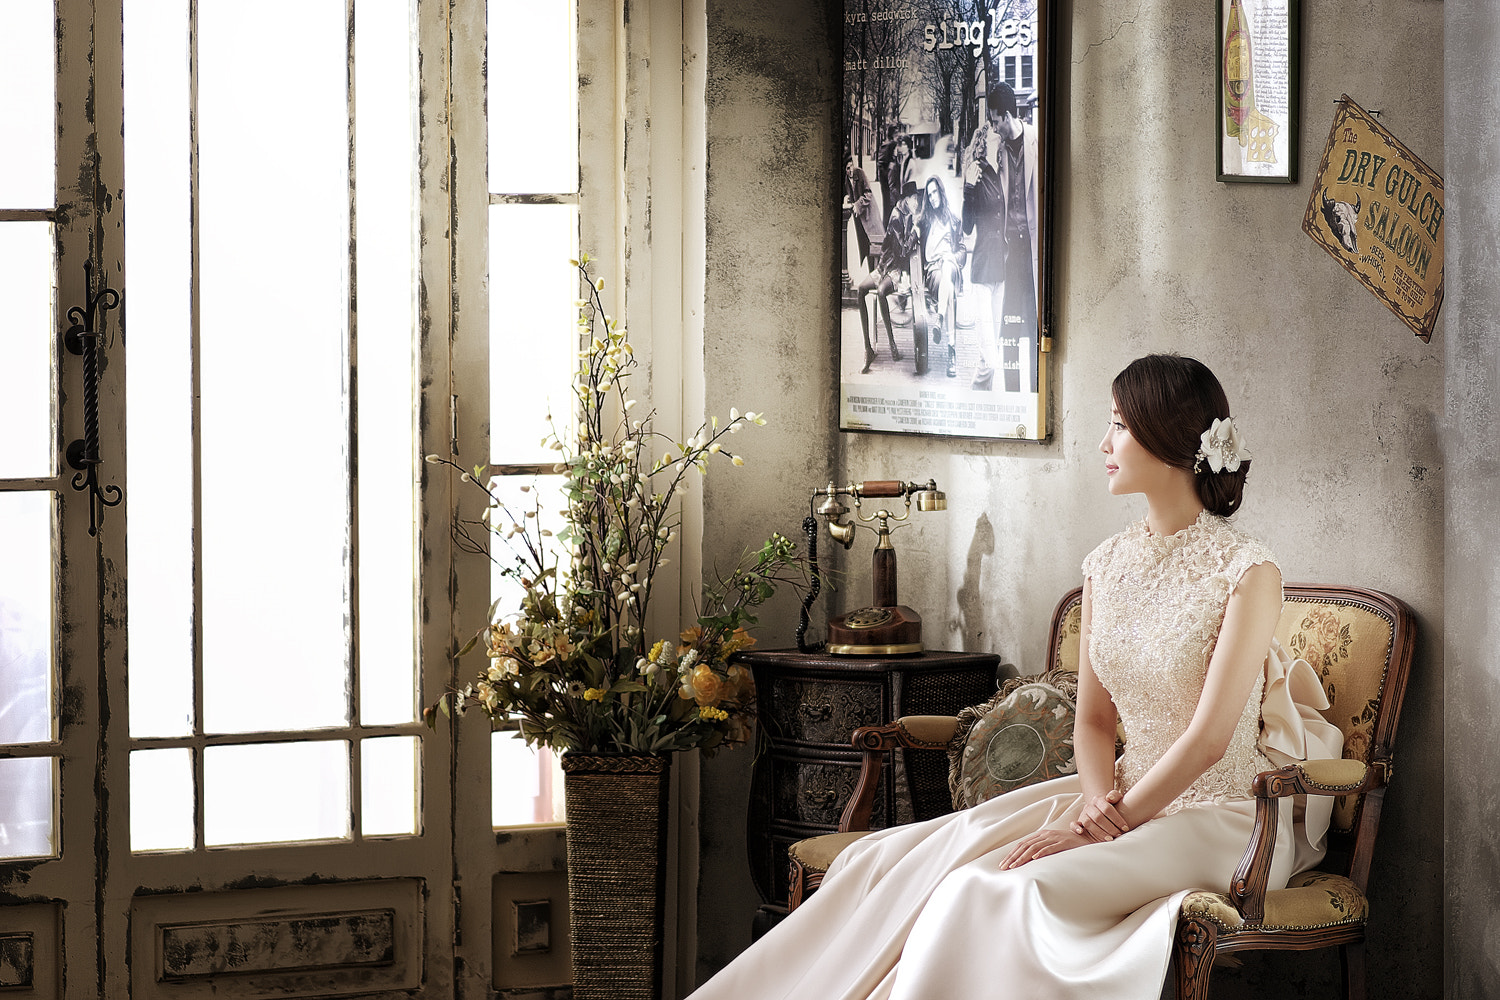 Photograph Wedding #1 by Sin Dong Kim on 500px